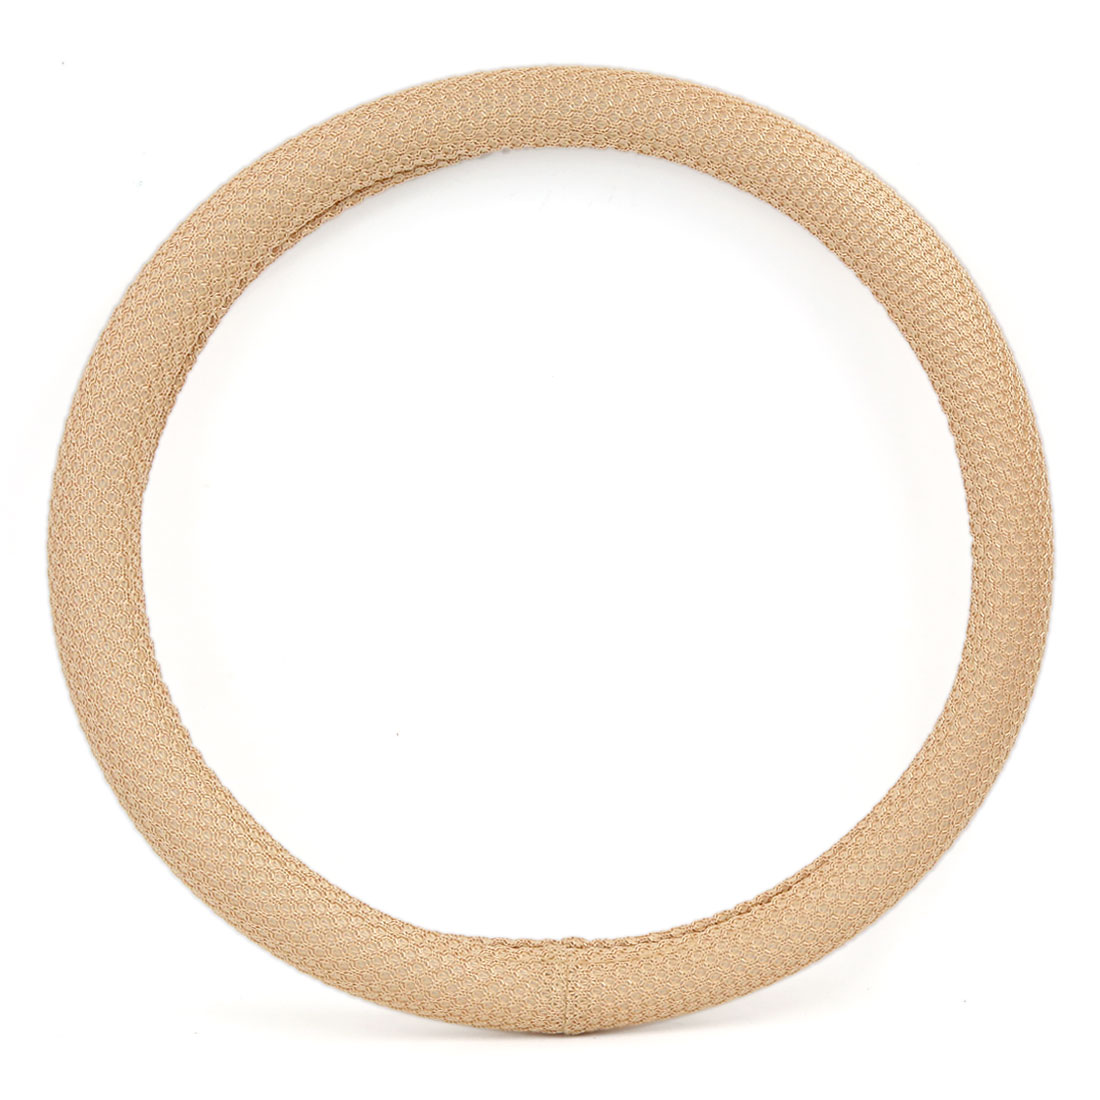 "Universal Truck SUV Car Vehicle Beige Comfort Odorless Breathable Steering Wheel Cover Protector 15"" Outer Dia"